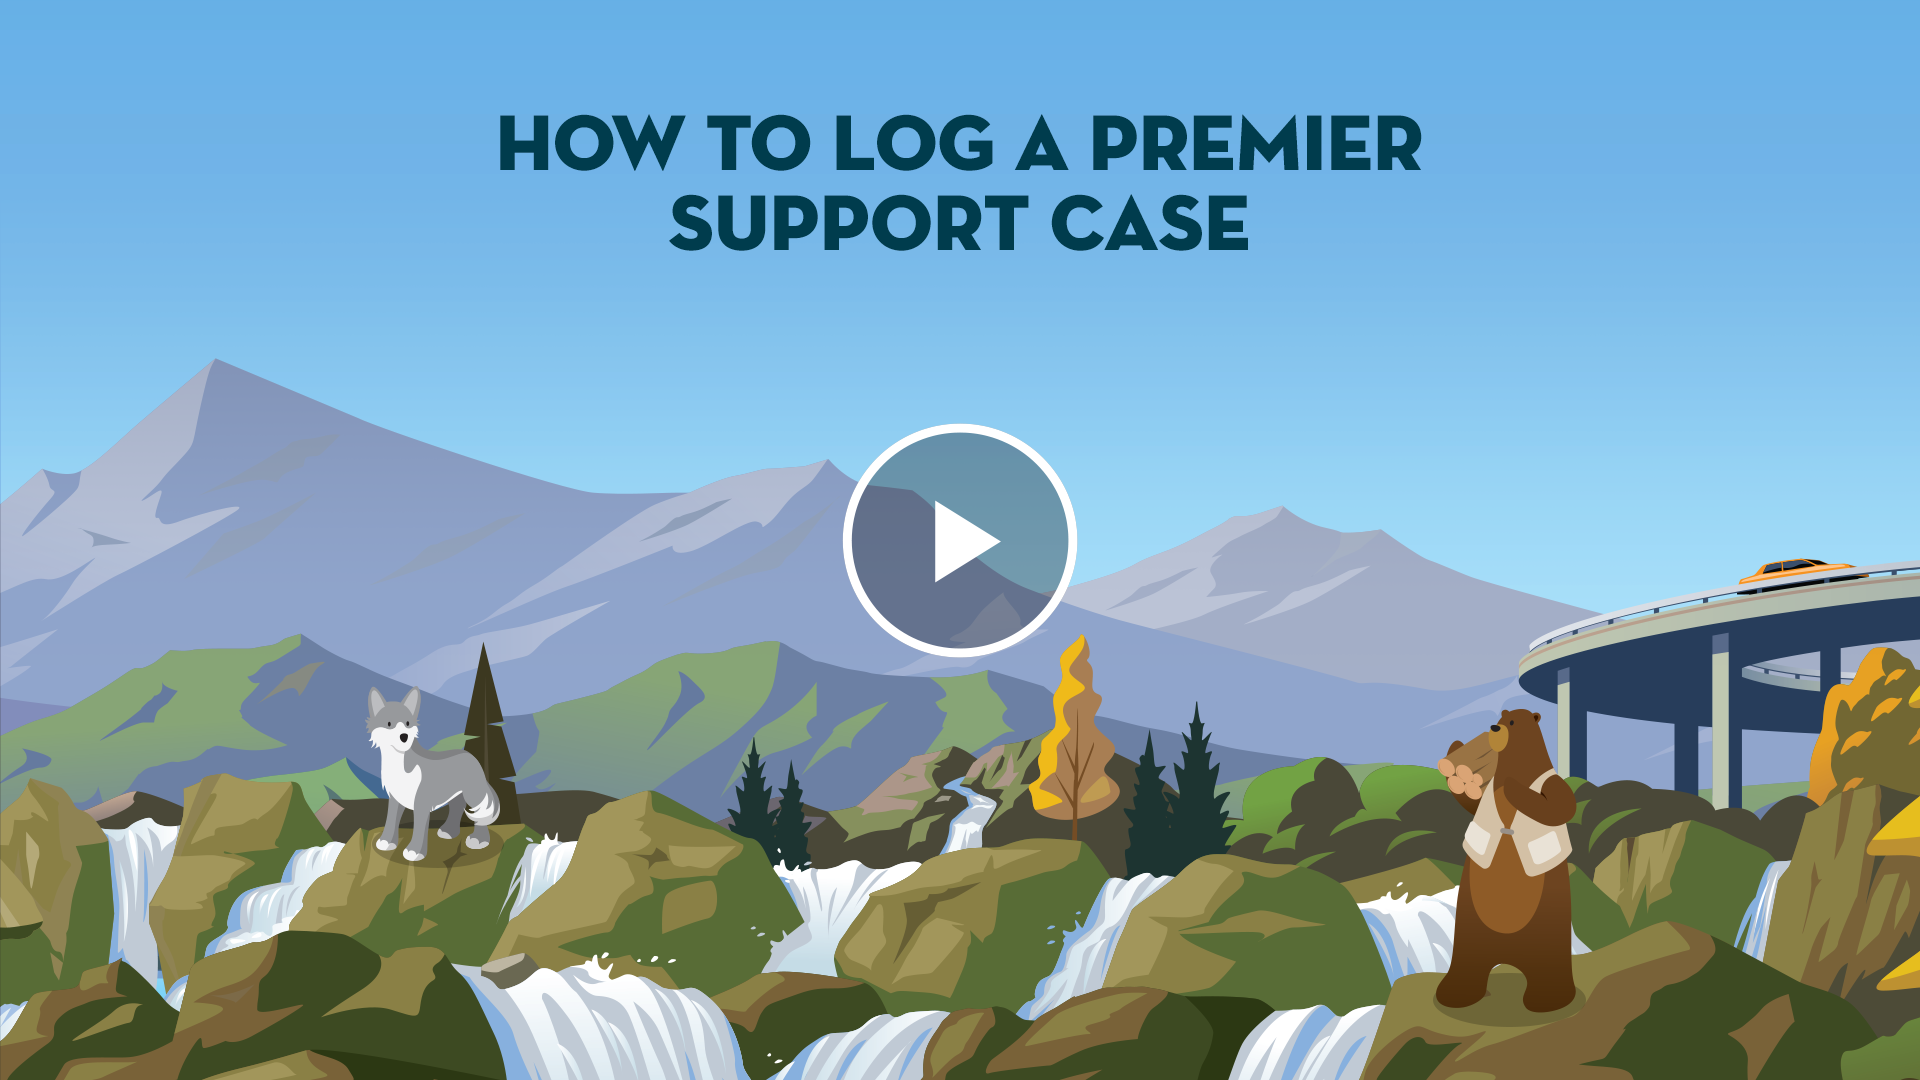 How to Log a Premier Support Case